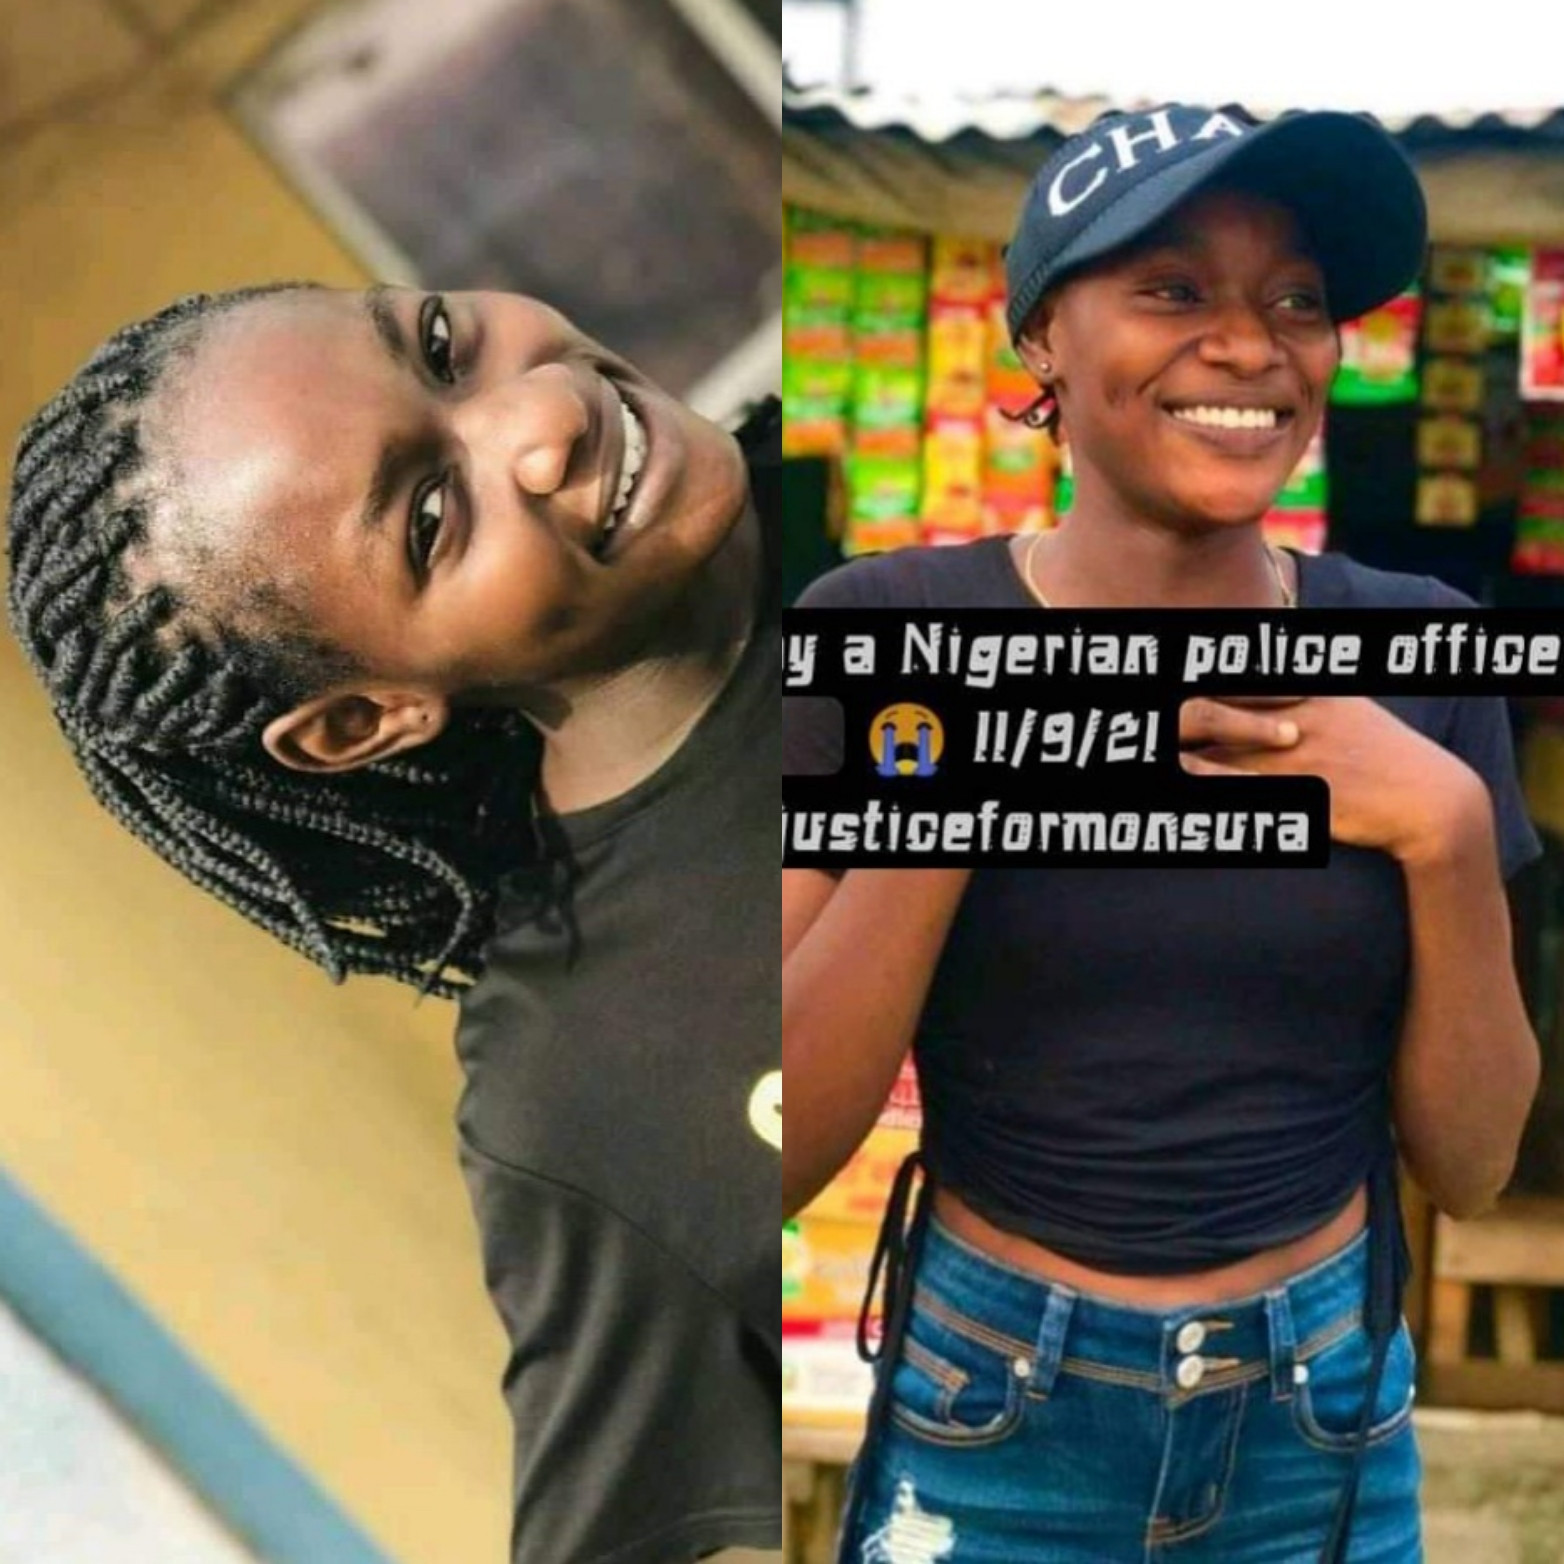 Police officer who killed young lady in Ijeshatedo dismissed from service; to be arraigned in court